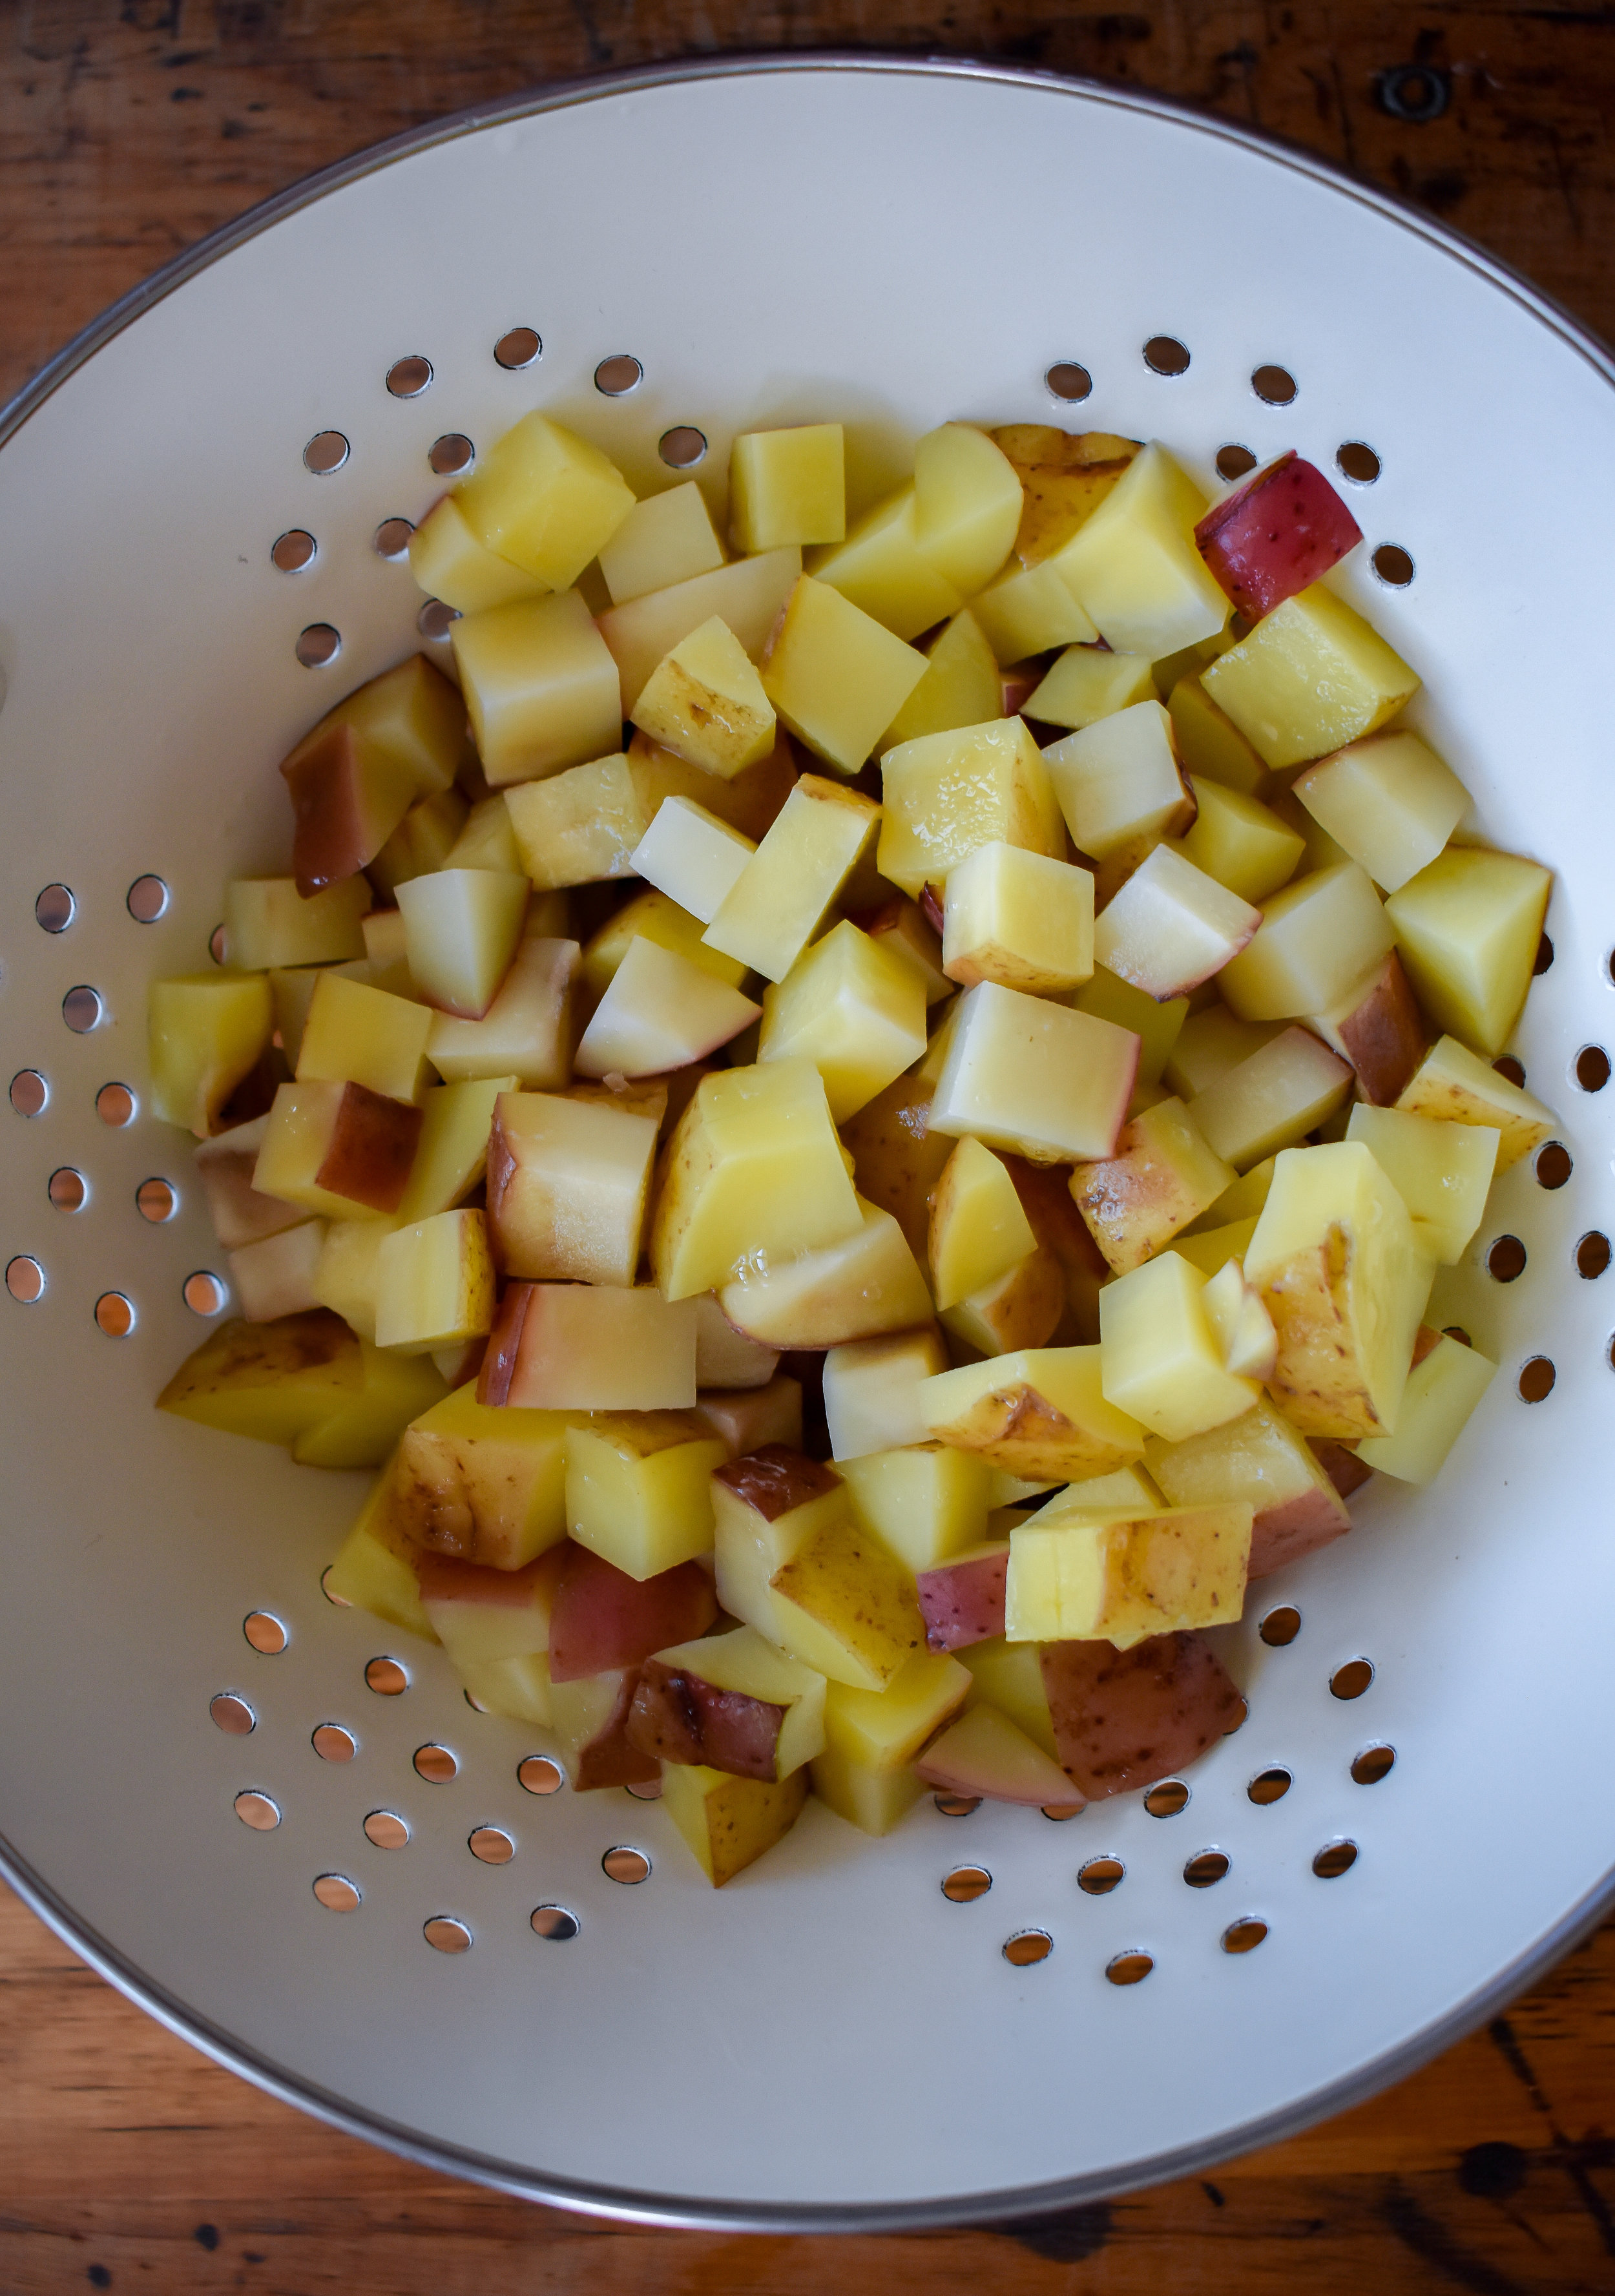 1. To start, add potatoes to a large microwave-safe bowl with 2 tbl of water. Microwave for 7-8 minutes to parboil potatoes.